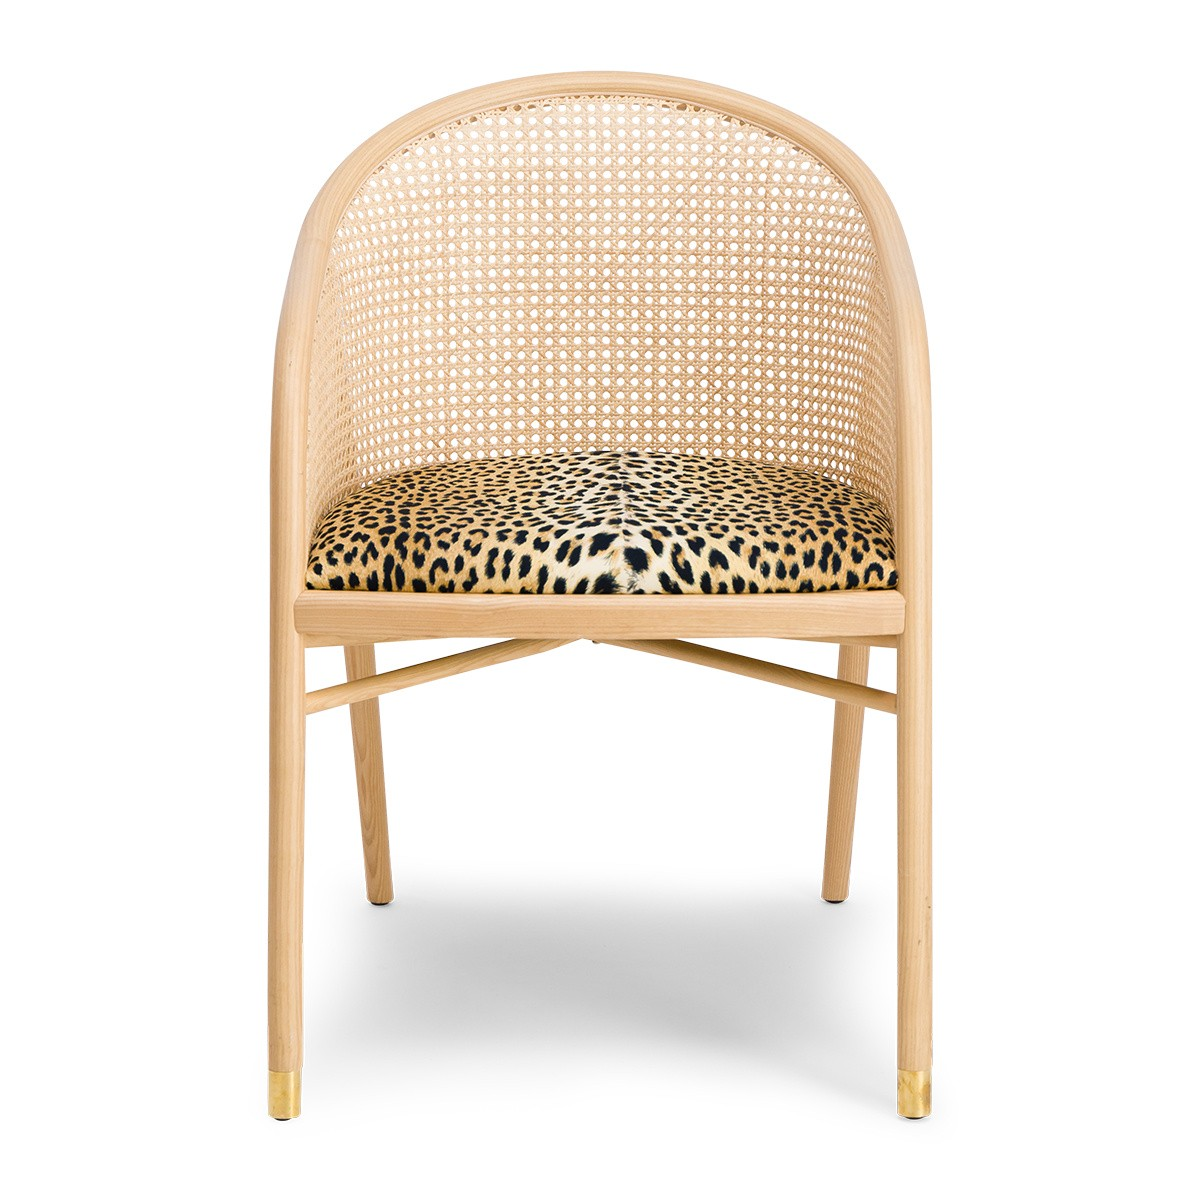 Cavallo Armchair, Panther Print with Natural Frame